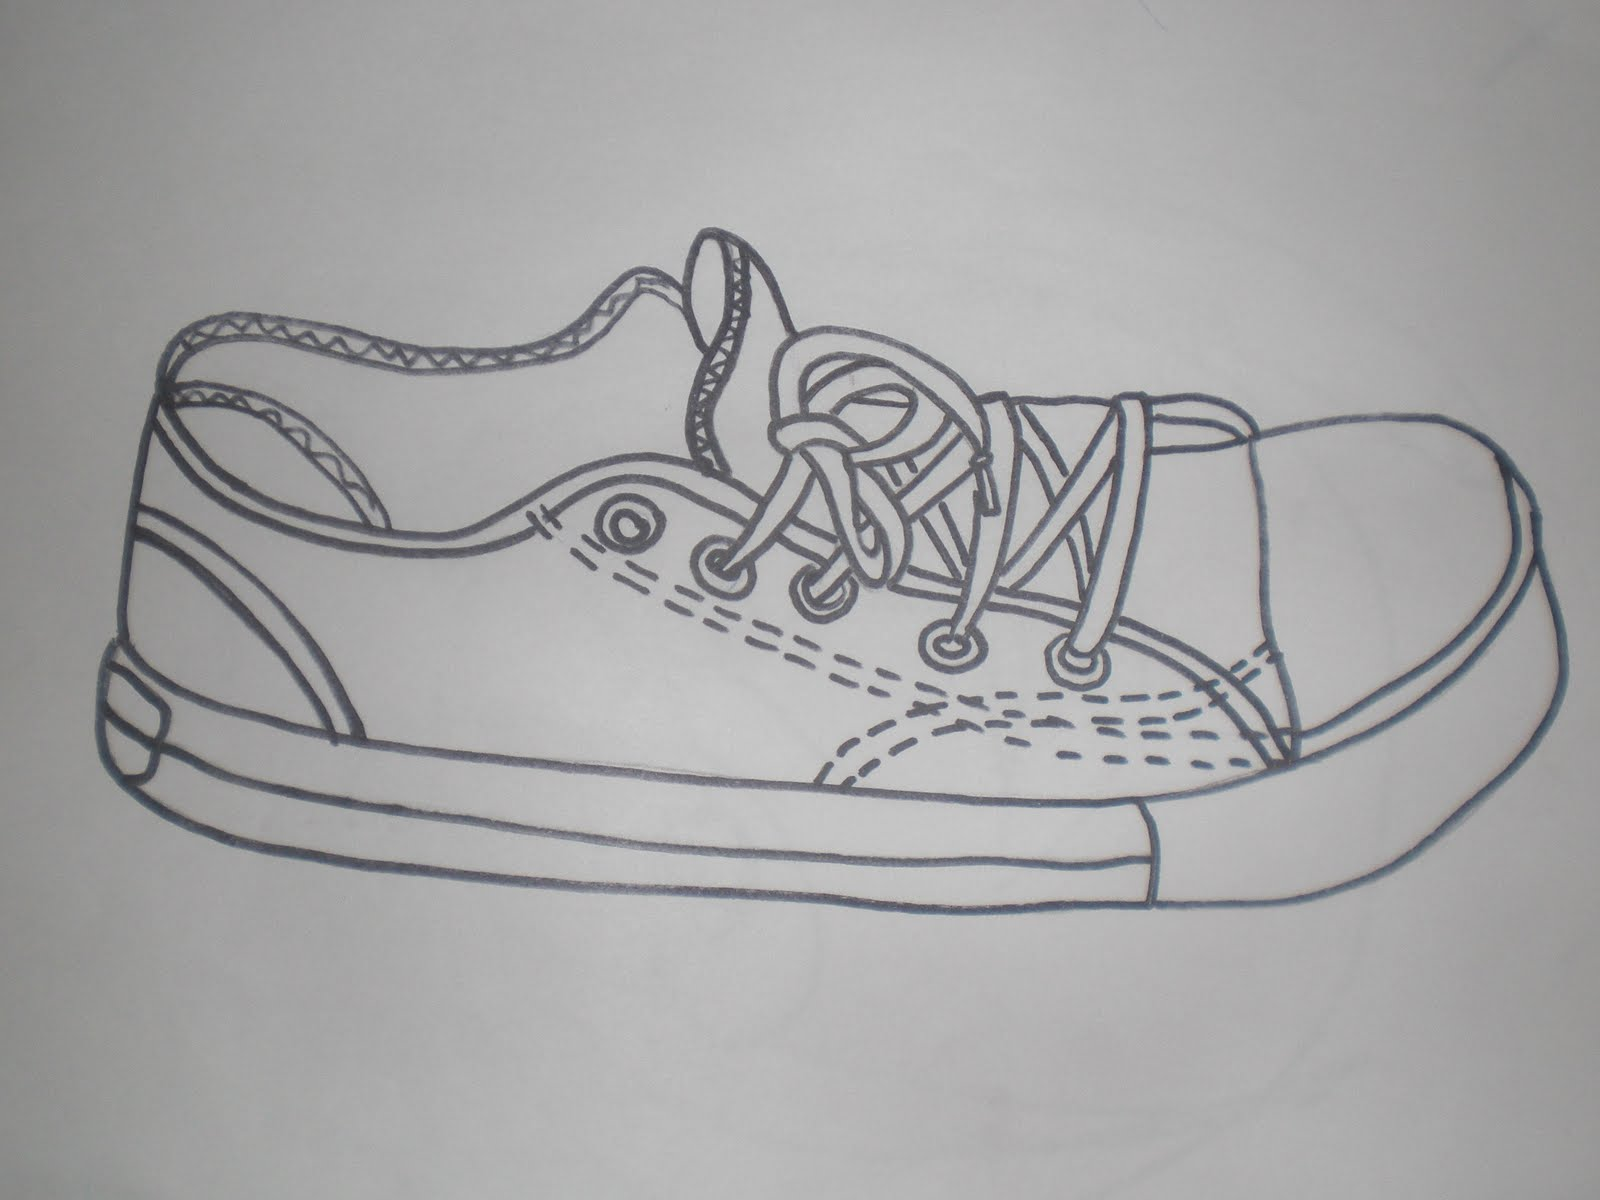 Contour Line Drawing Of Shoes : Contour line drawing shoe imgkid the image kid